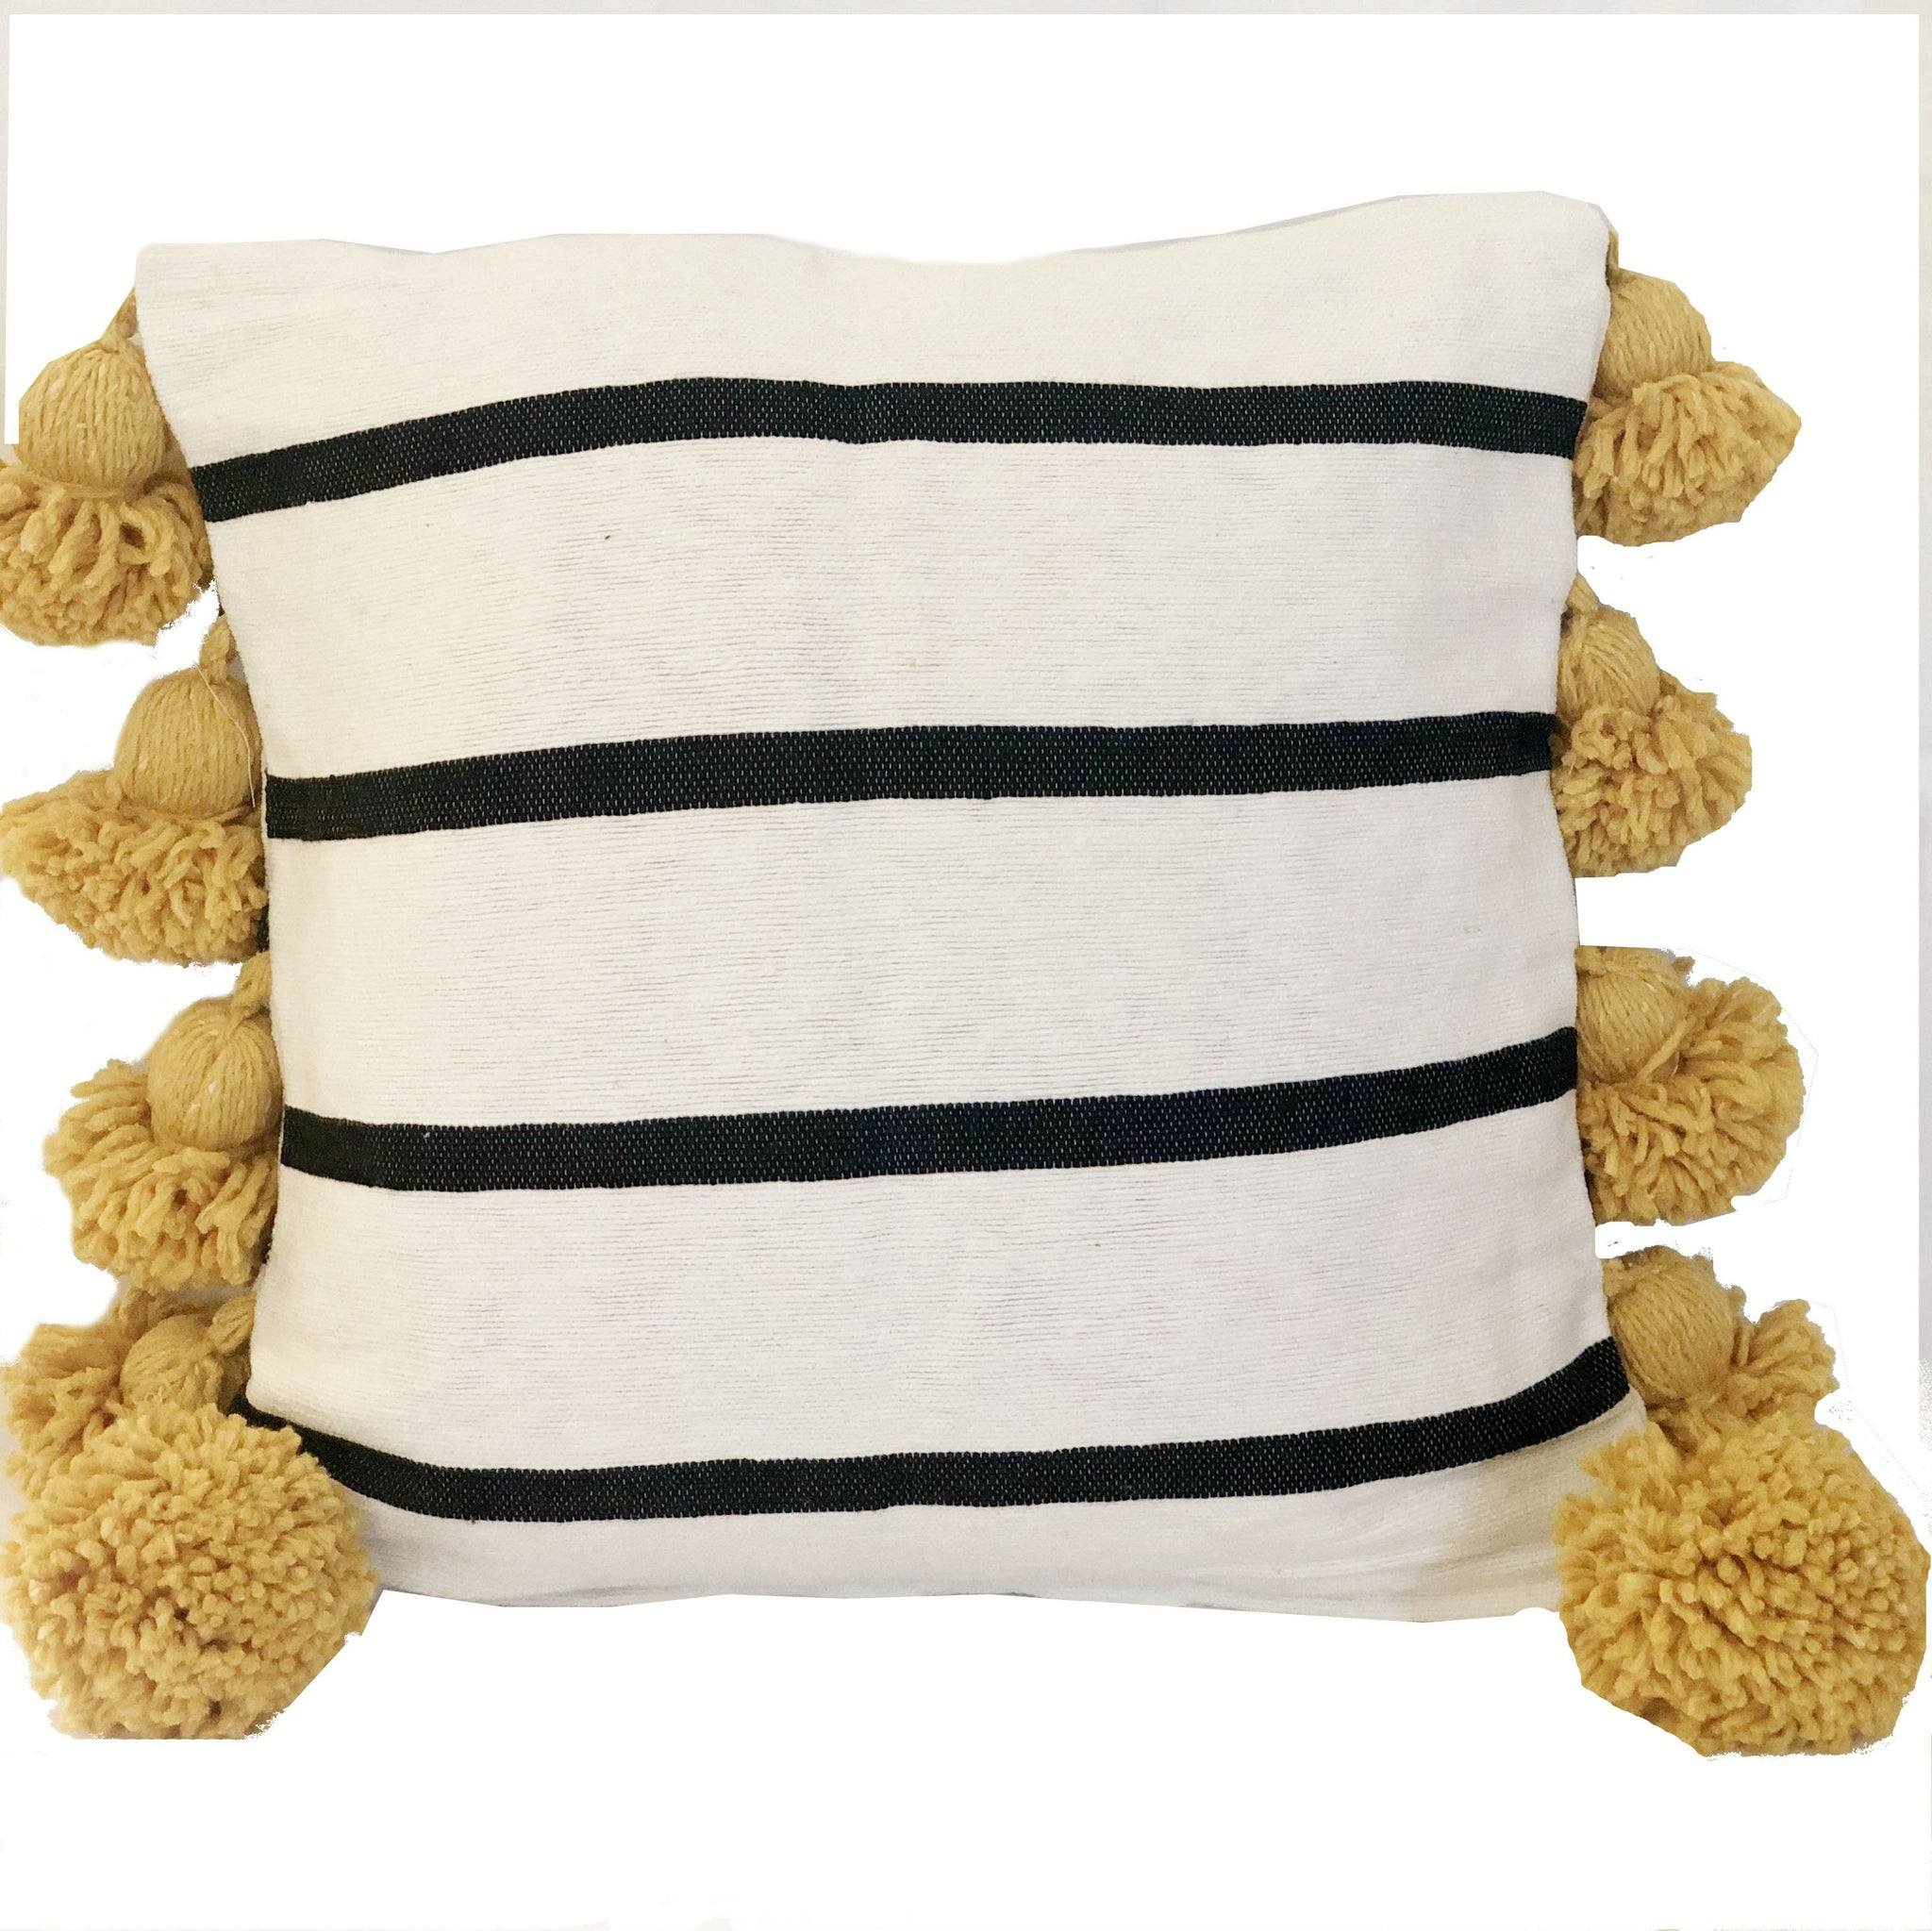 LINA pillow cover WHITE/BLACK/SAFFRON